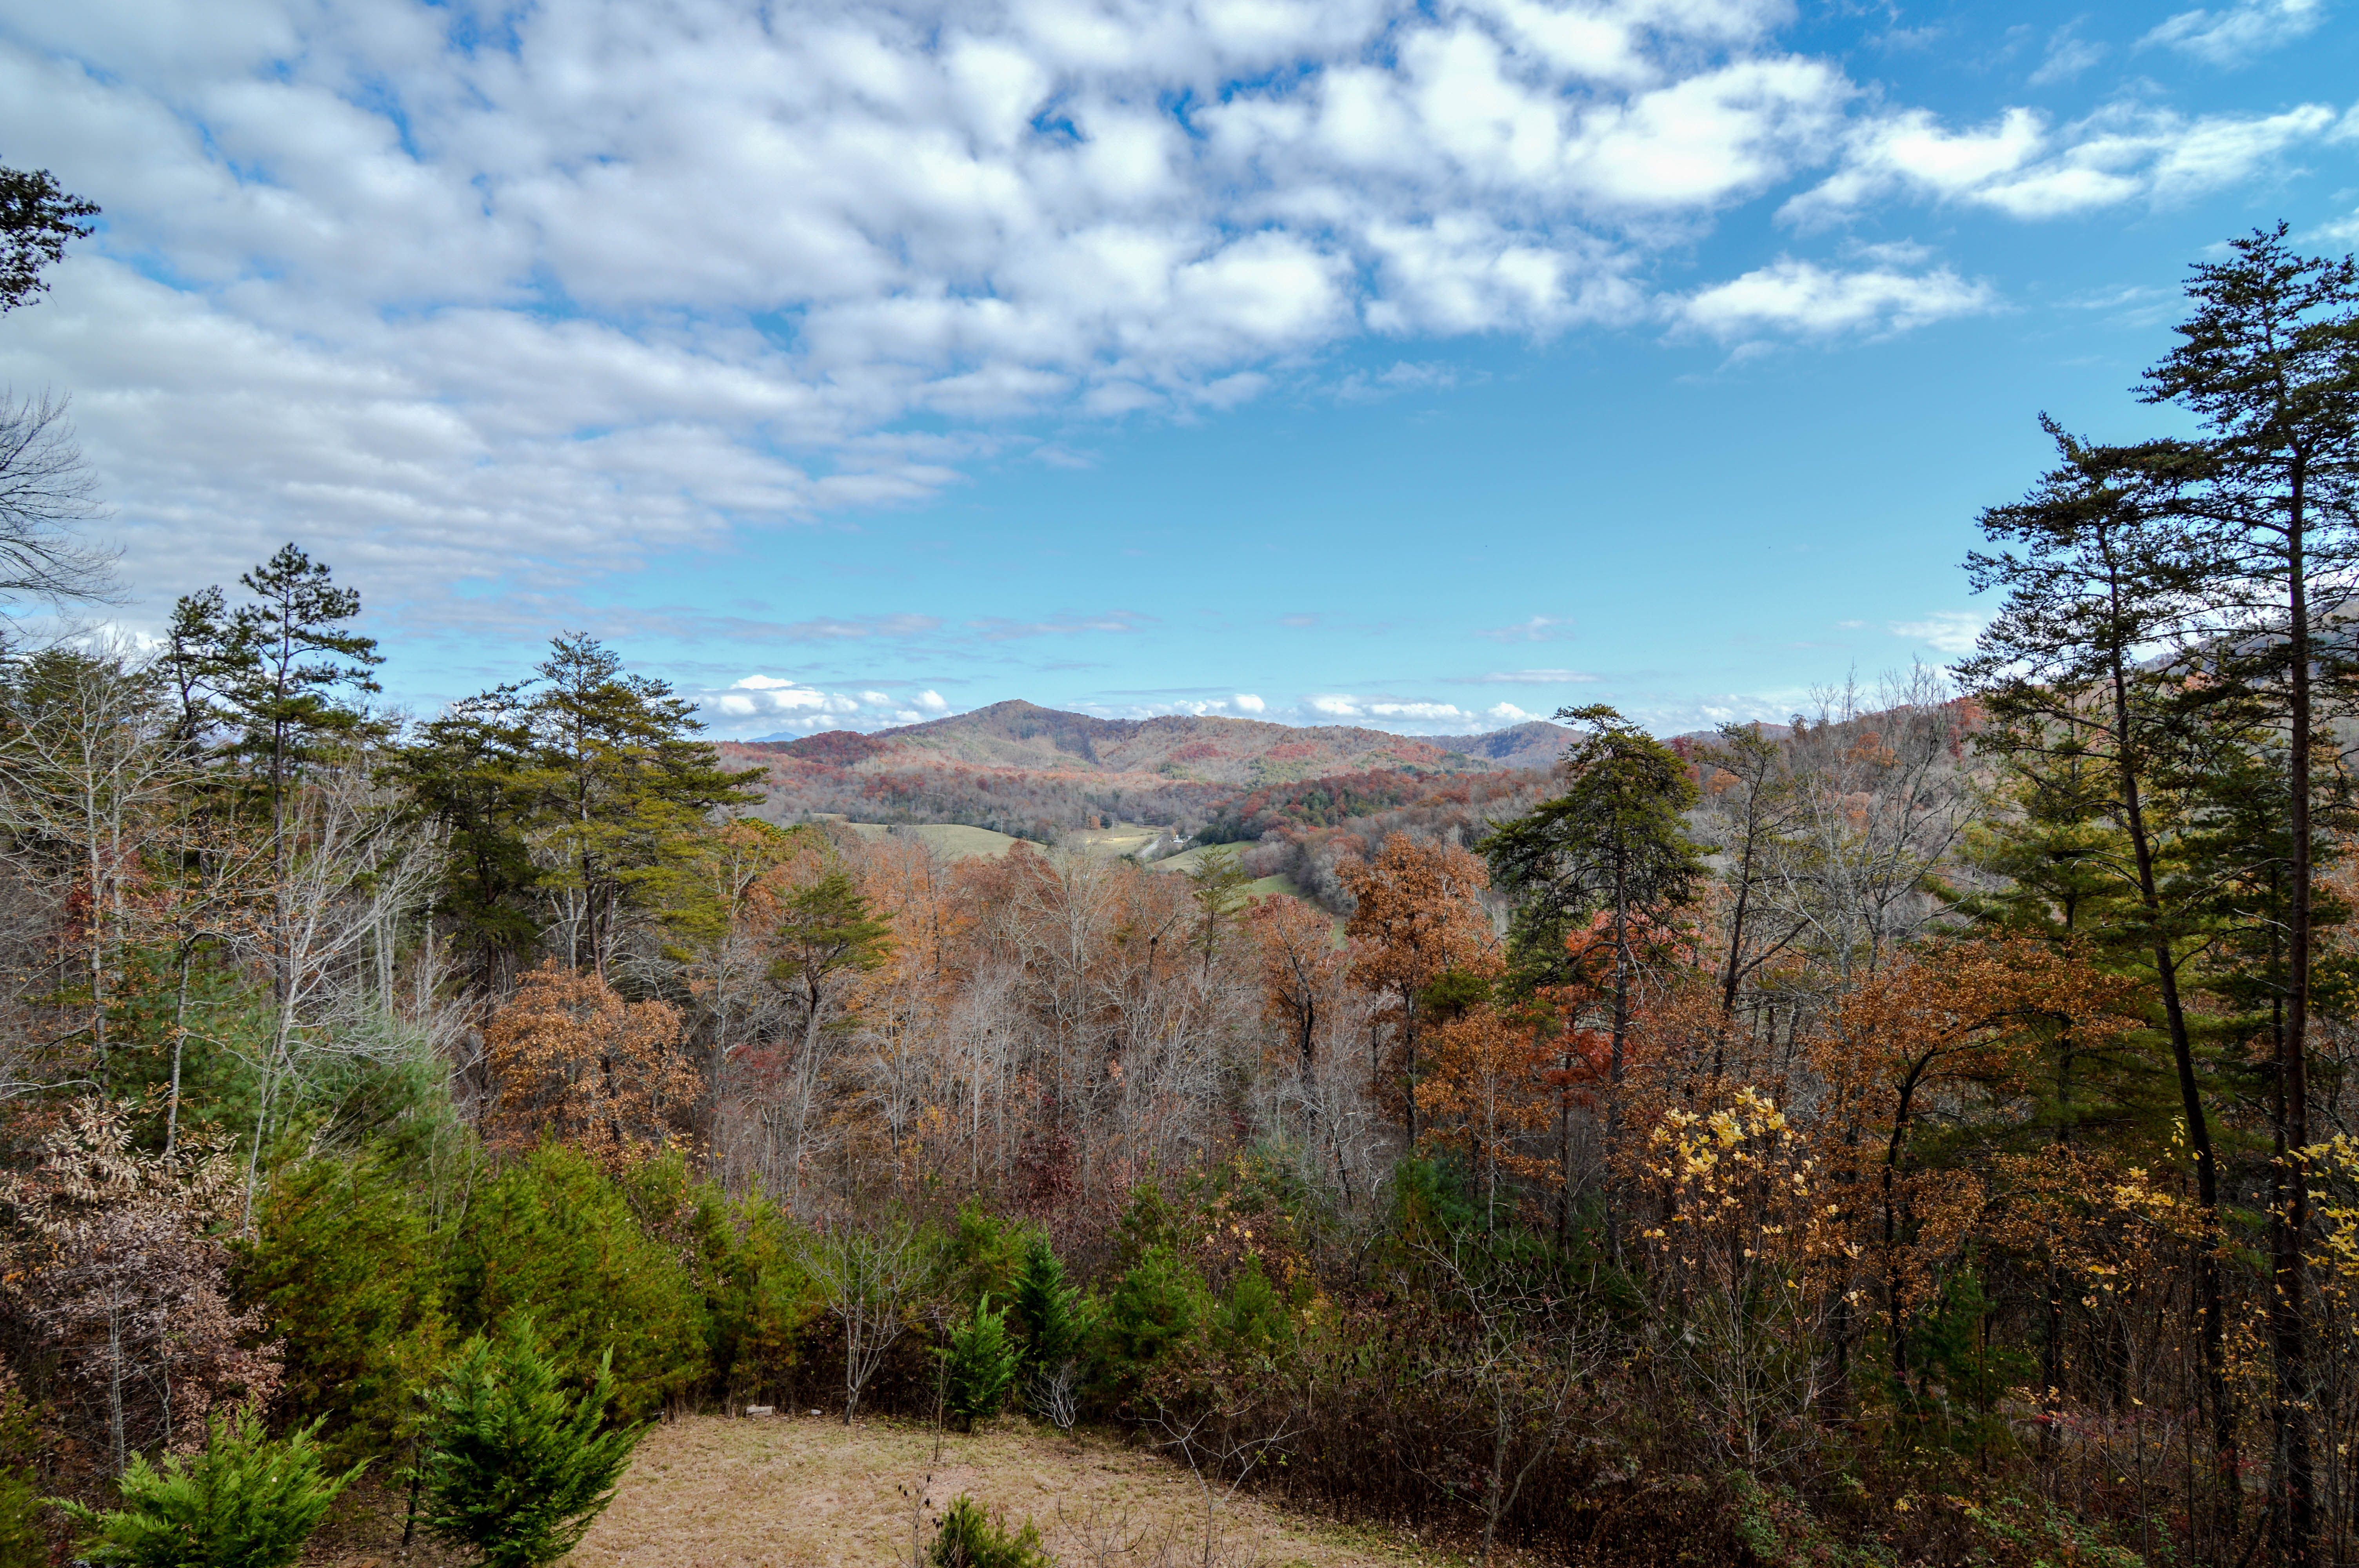 Sit and relax on your back porch and stare endlessly on the FANTASTIC long-range mountain and forrest views! For more info please contact Rick Andrews 706-970-7120 or email info@bestmountaindeals.com